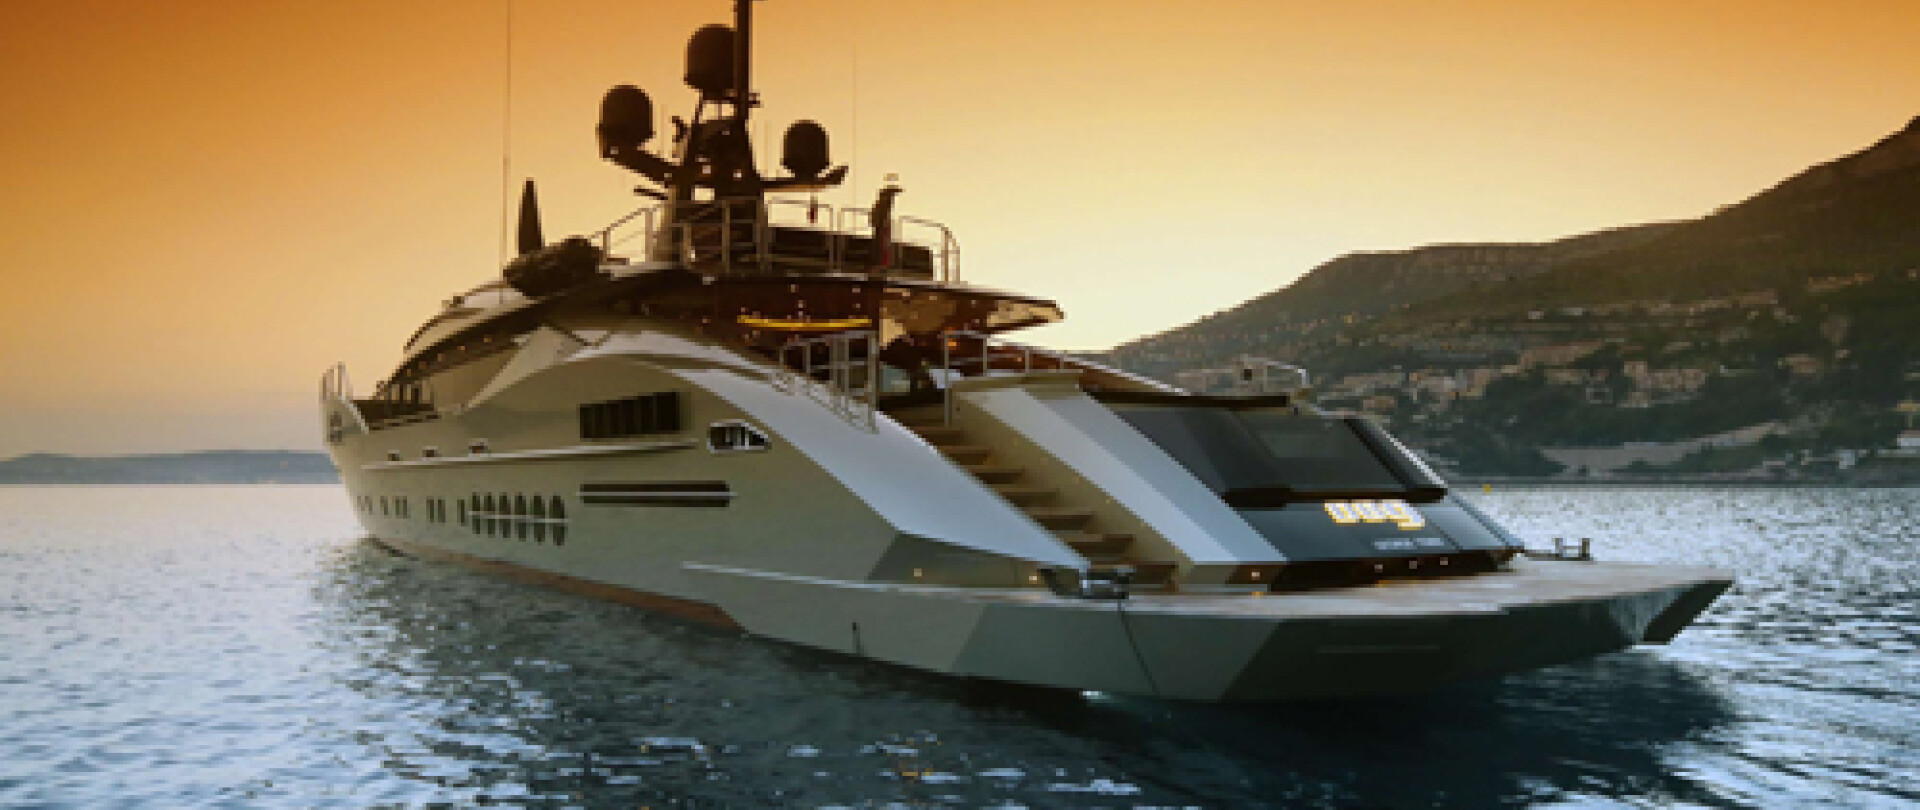 DB9 Yacht for Charter photo 17